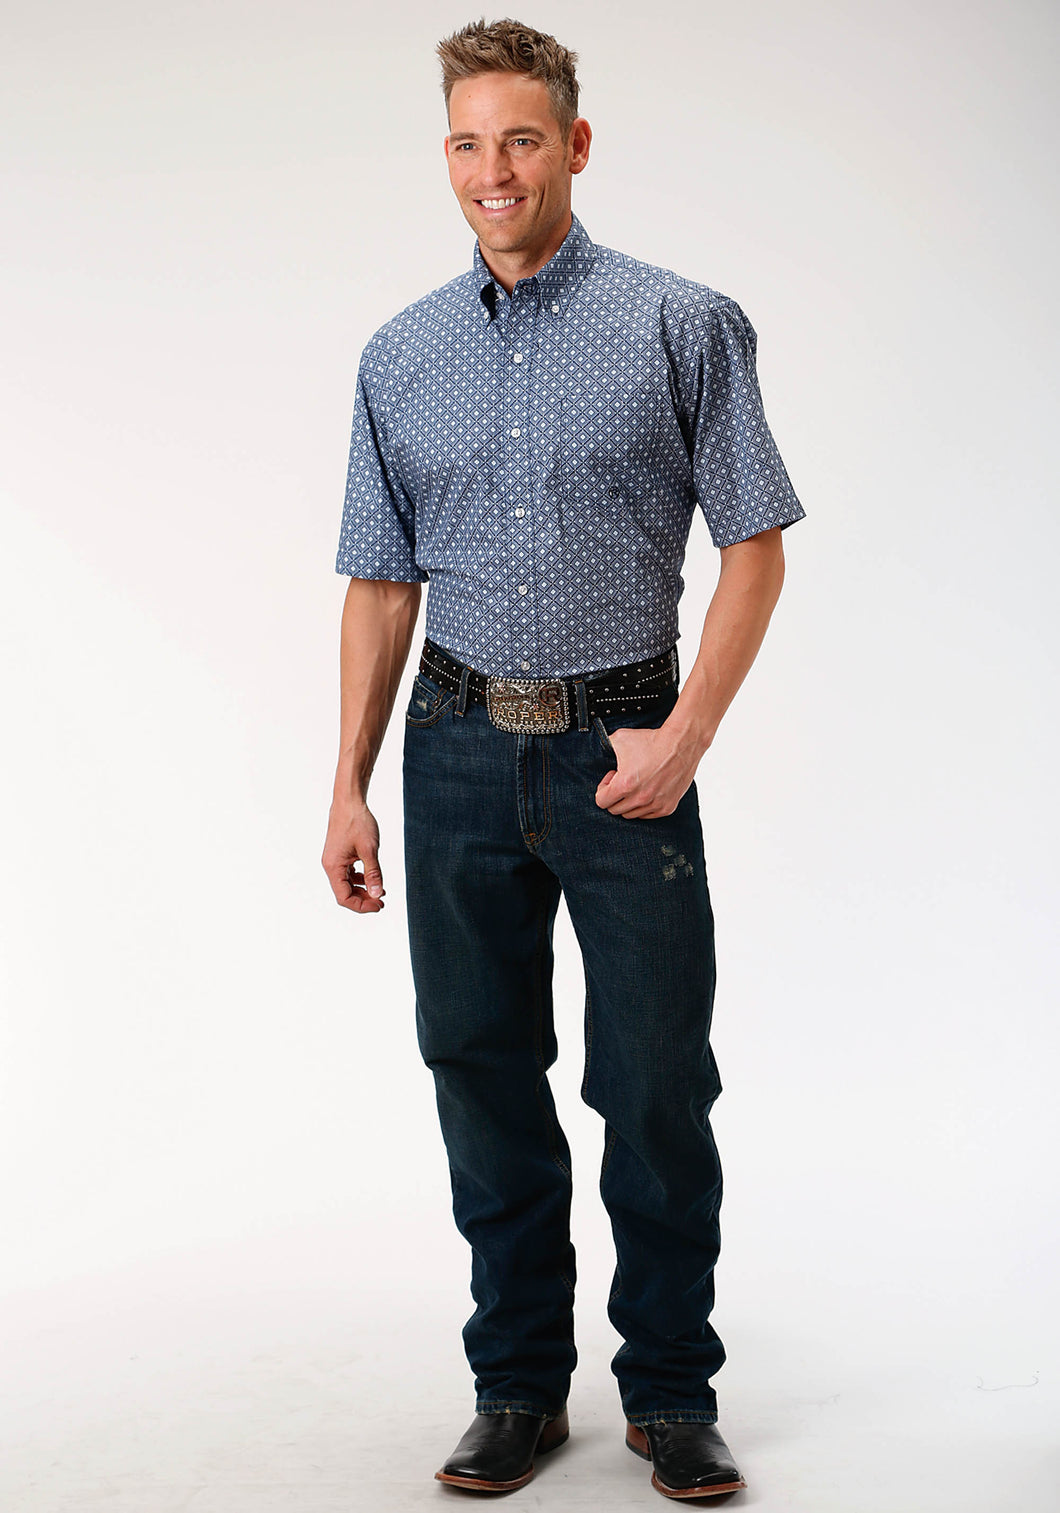 Men's Amarillo Collection- Indigo Trail Amarillo Mens Short Sleeve Shirt 1519 King Of Diamonds